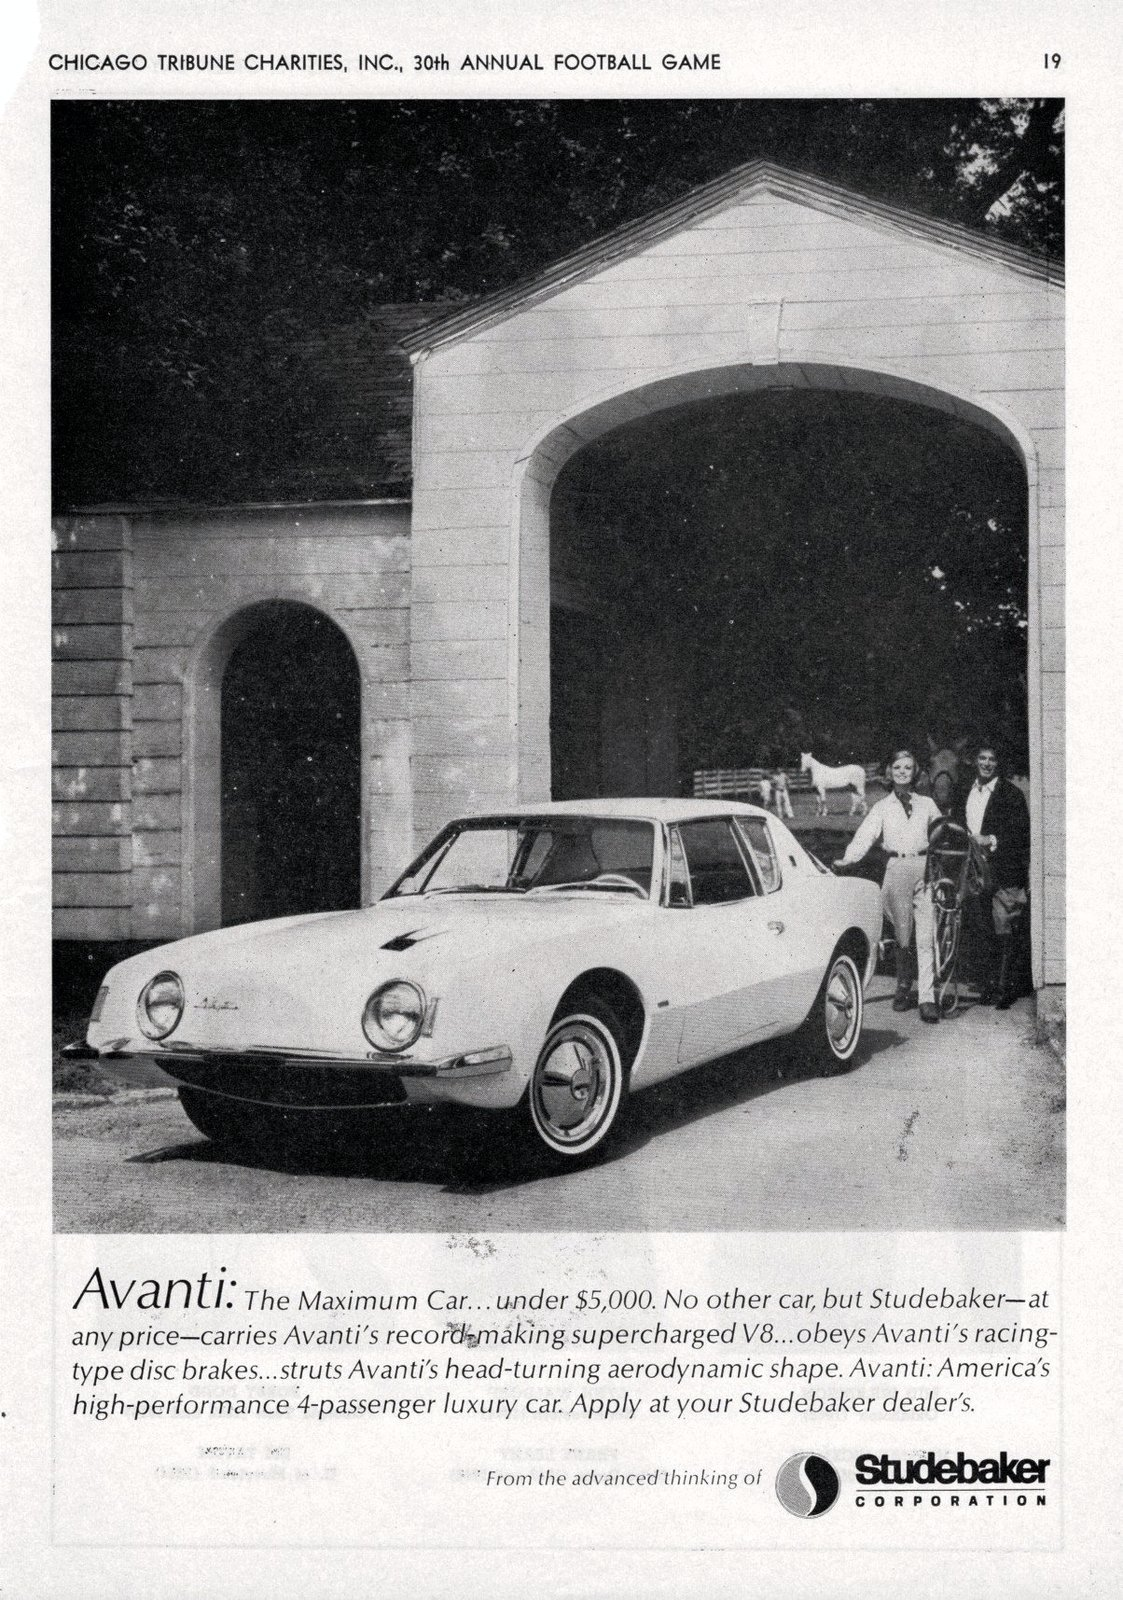 Studebaker Avanti (1963)  Italian for forward, the Avanti was created by Loewy and a team of designers during a 40-day crash course at the behest of Studebaker President Sherwood Egbert. Sporting a sleek look during a period of automotive overindulgence, the Avanti also boasted numerous safety features ahead of its time.  Photo Credit: Alden Jewell, Creative Commons